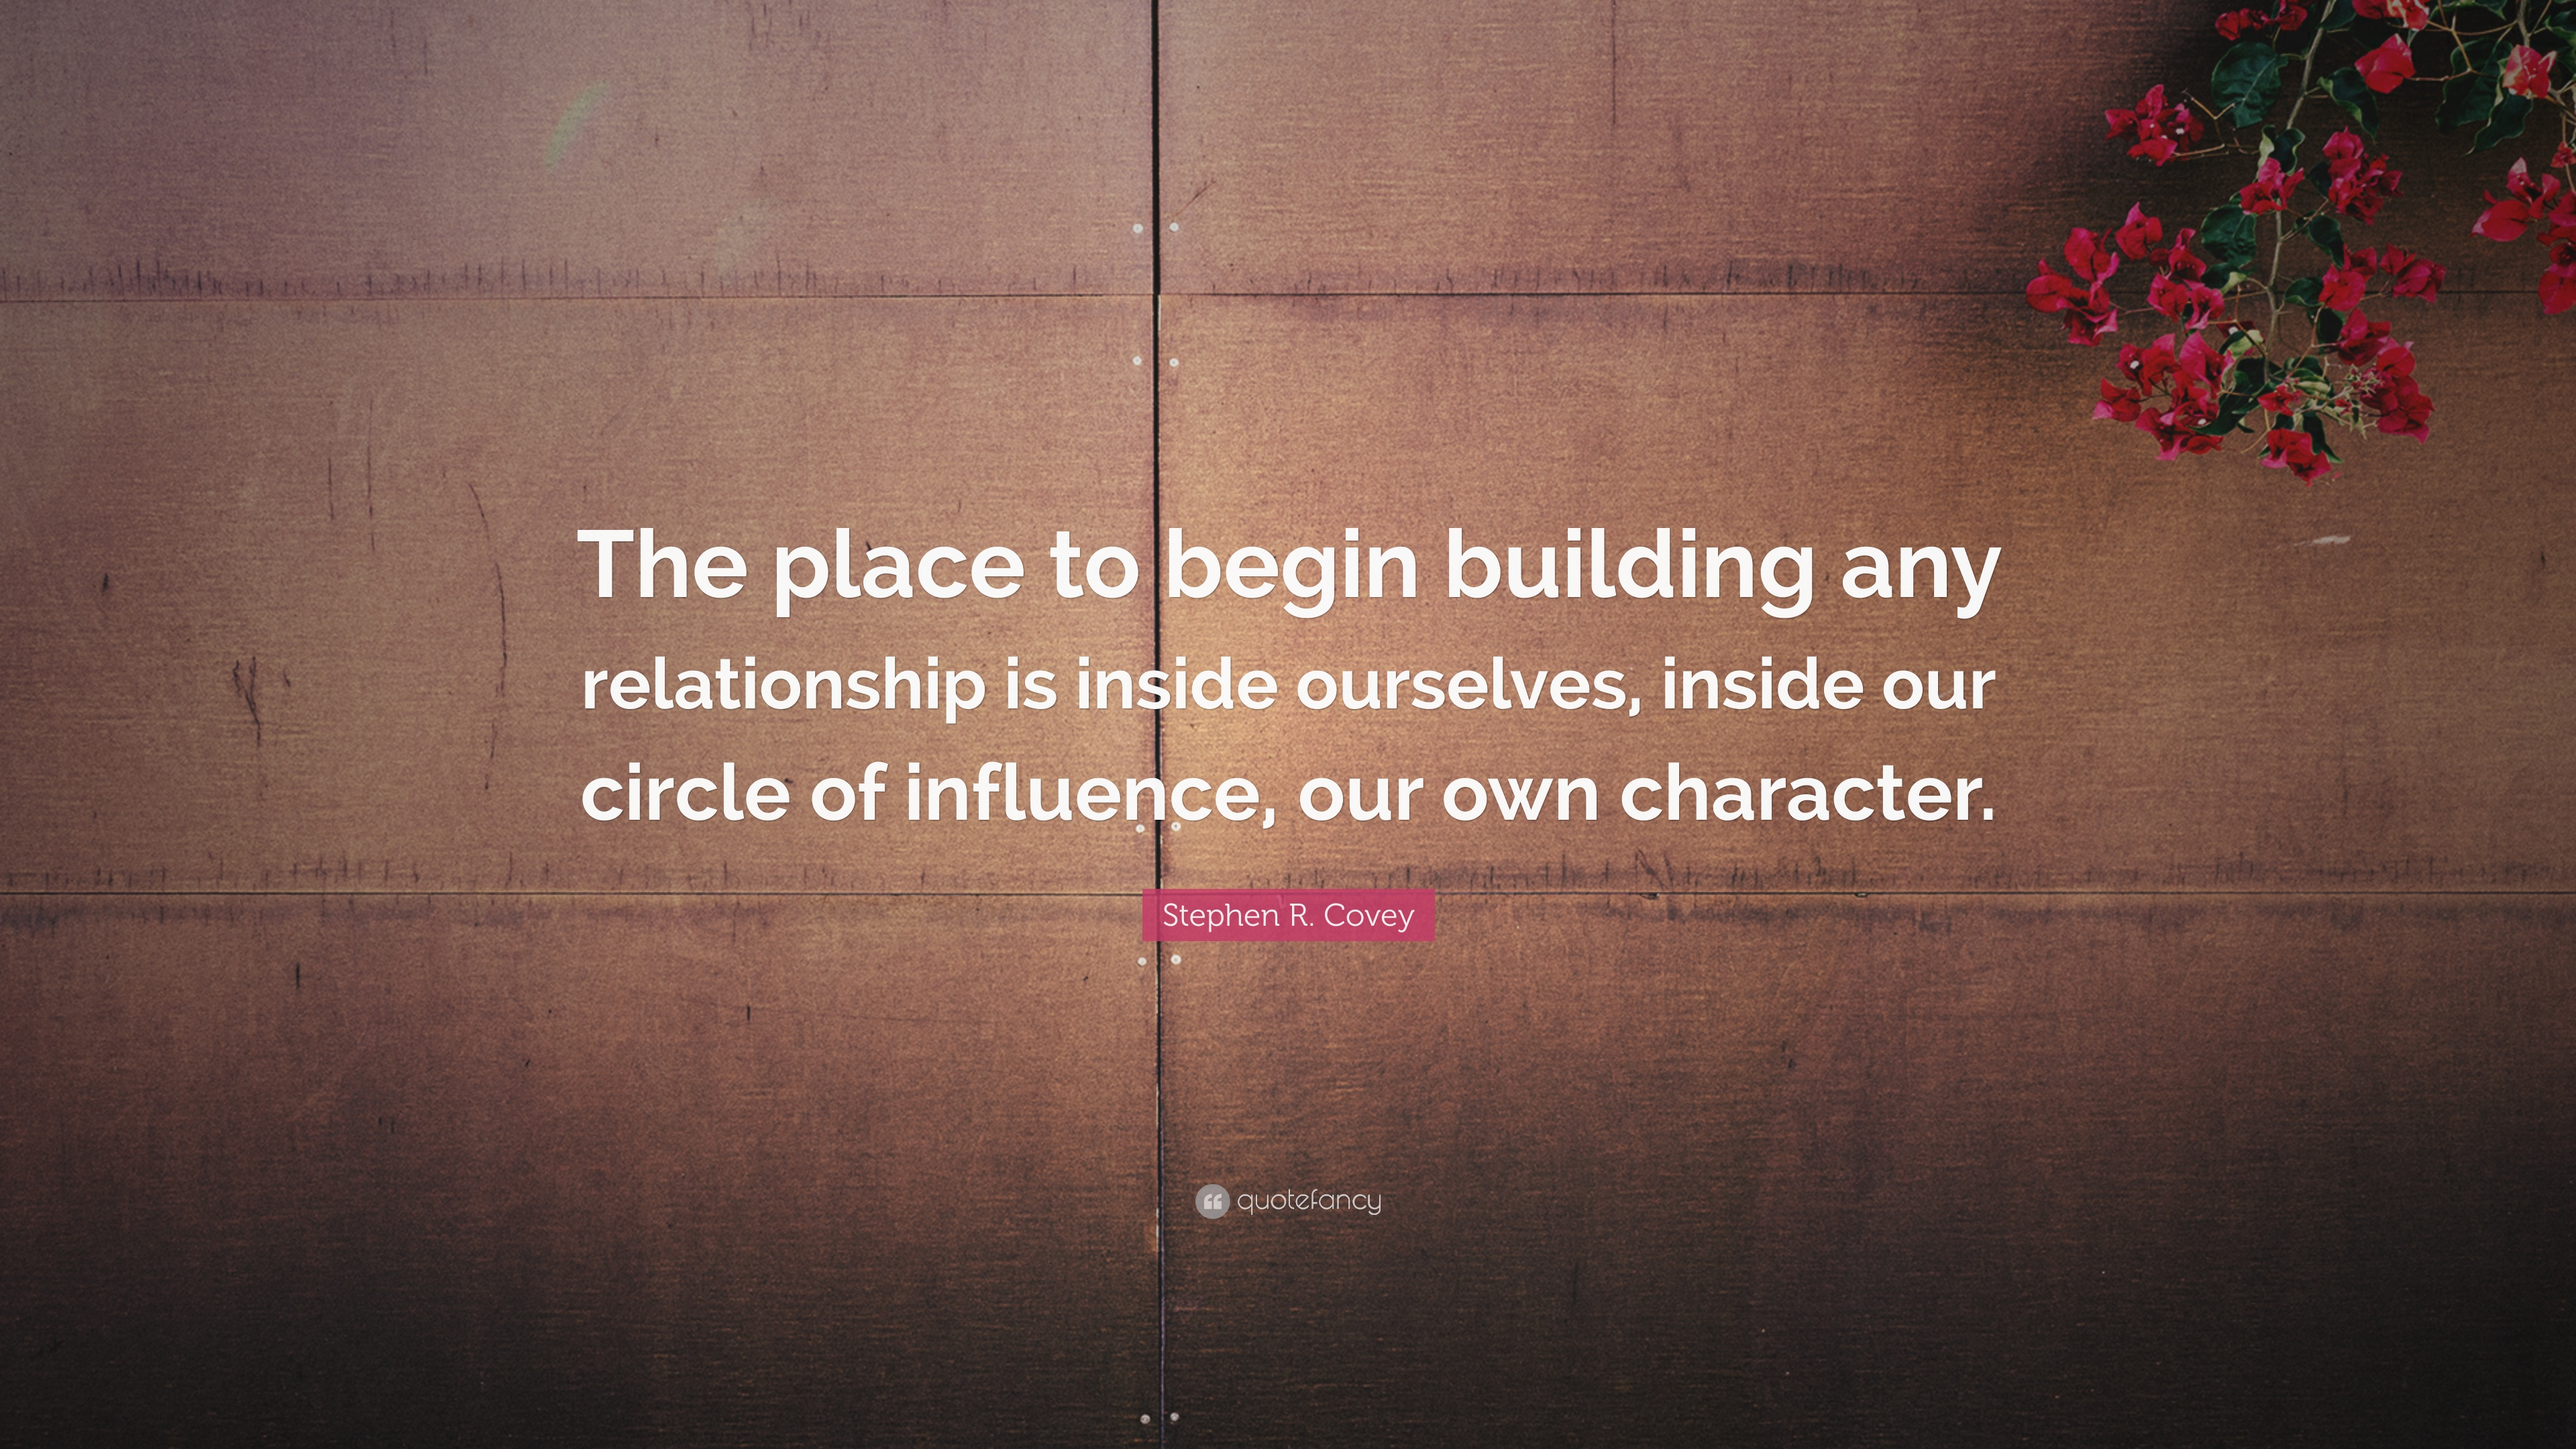 Stephen R. Covey Quote: The place to begin building any